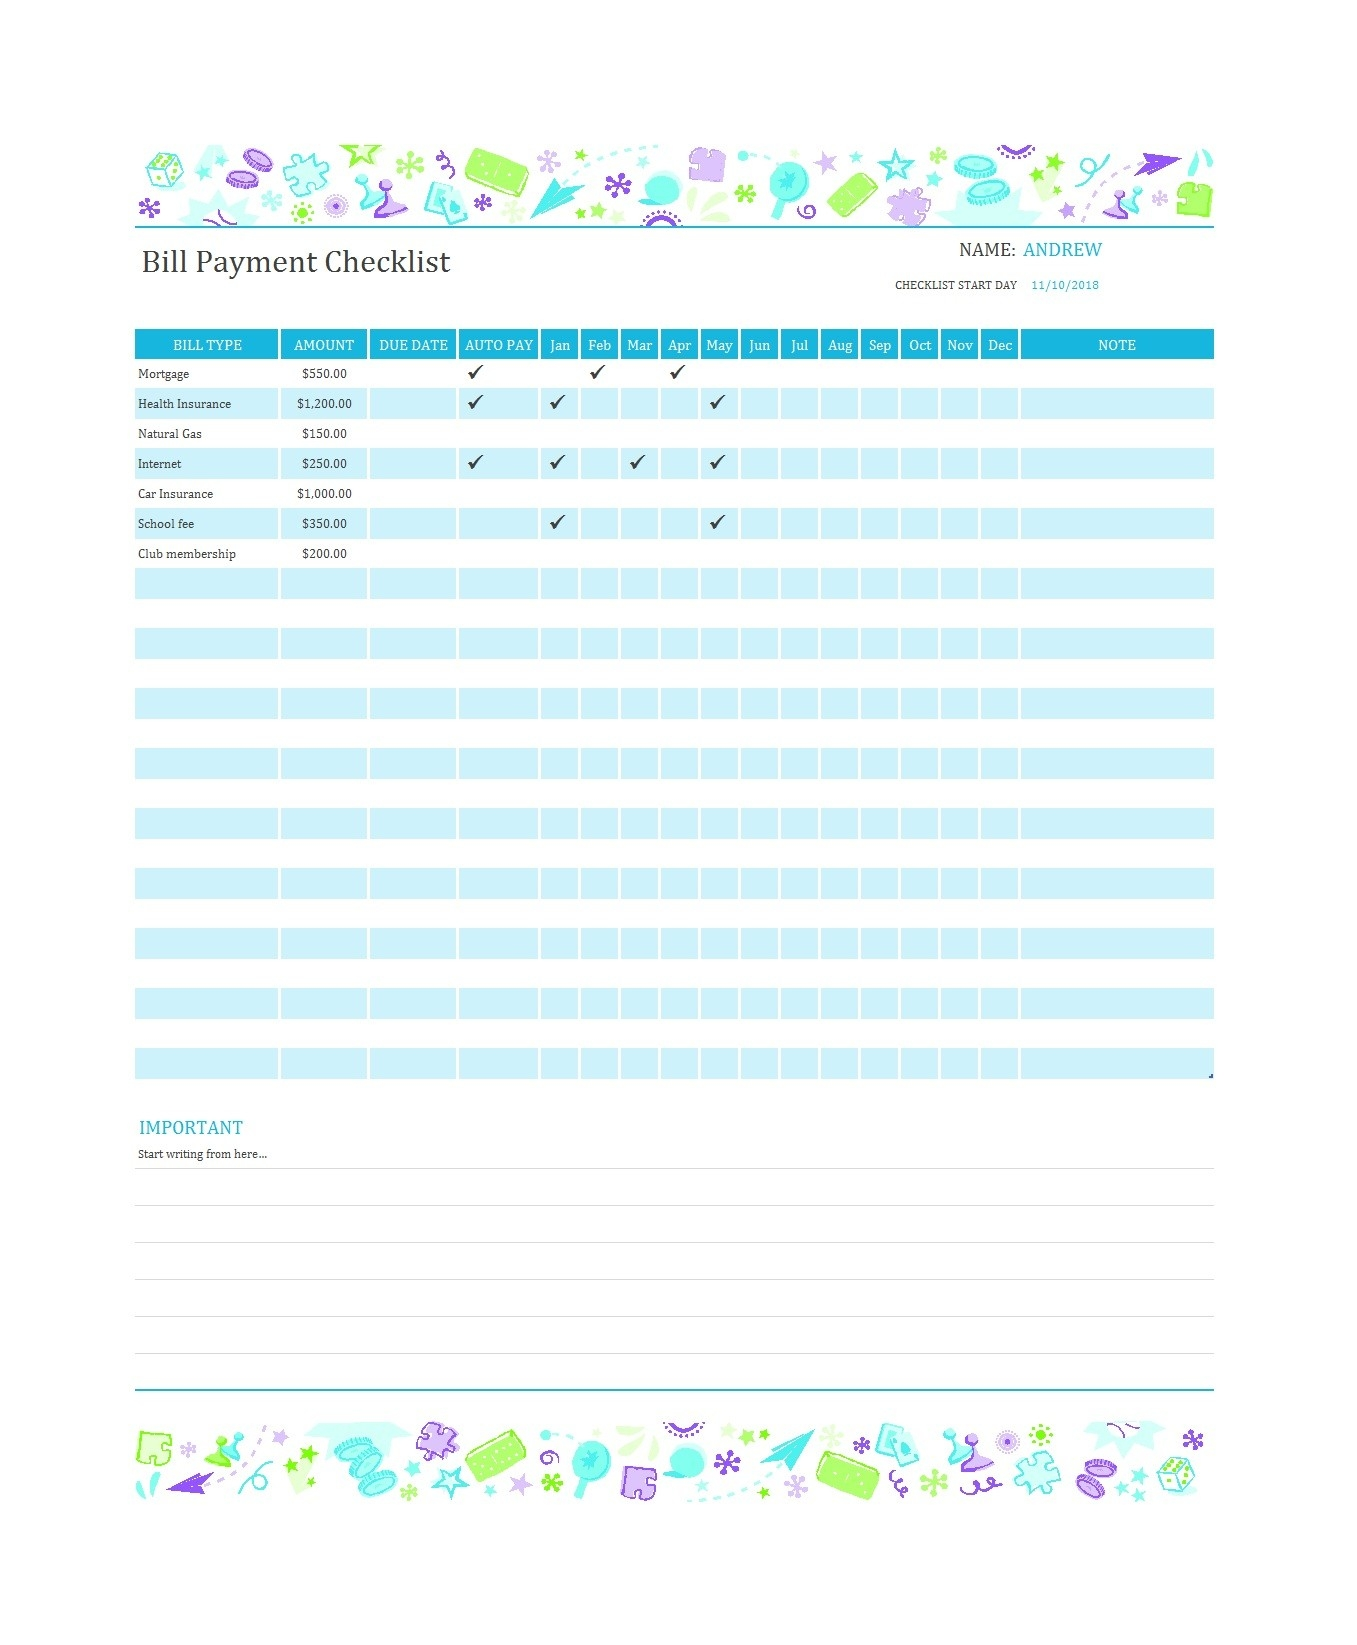 32 Free Bill Pay Checklists & Bill Calendars (Pdf, Word & Excel)-Pintable Monthly Bill Calender